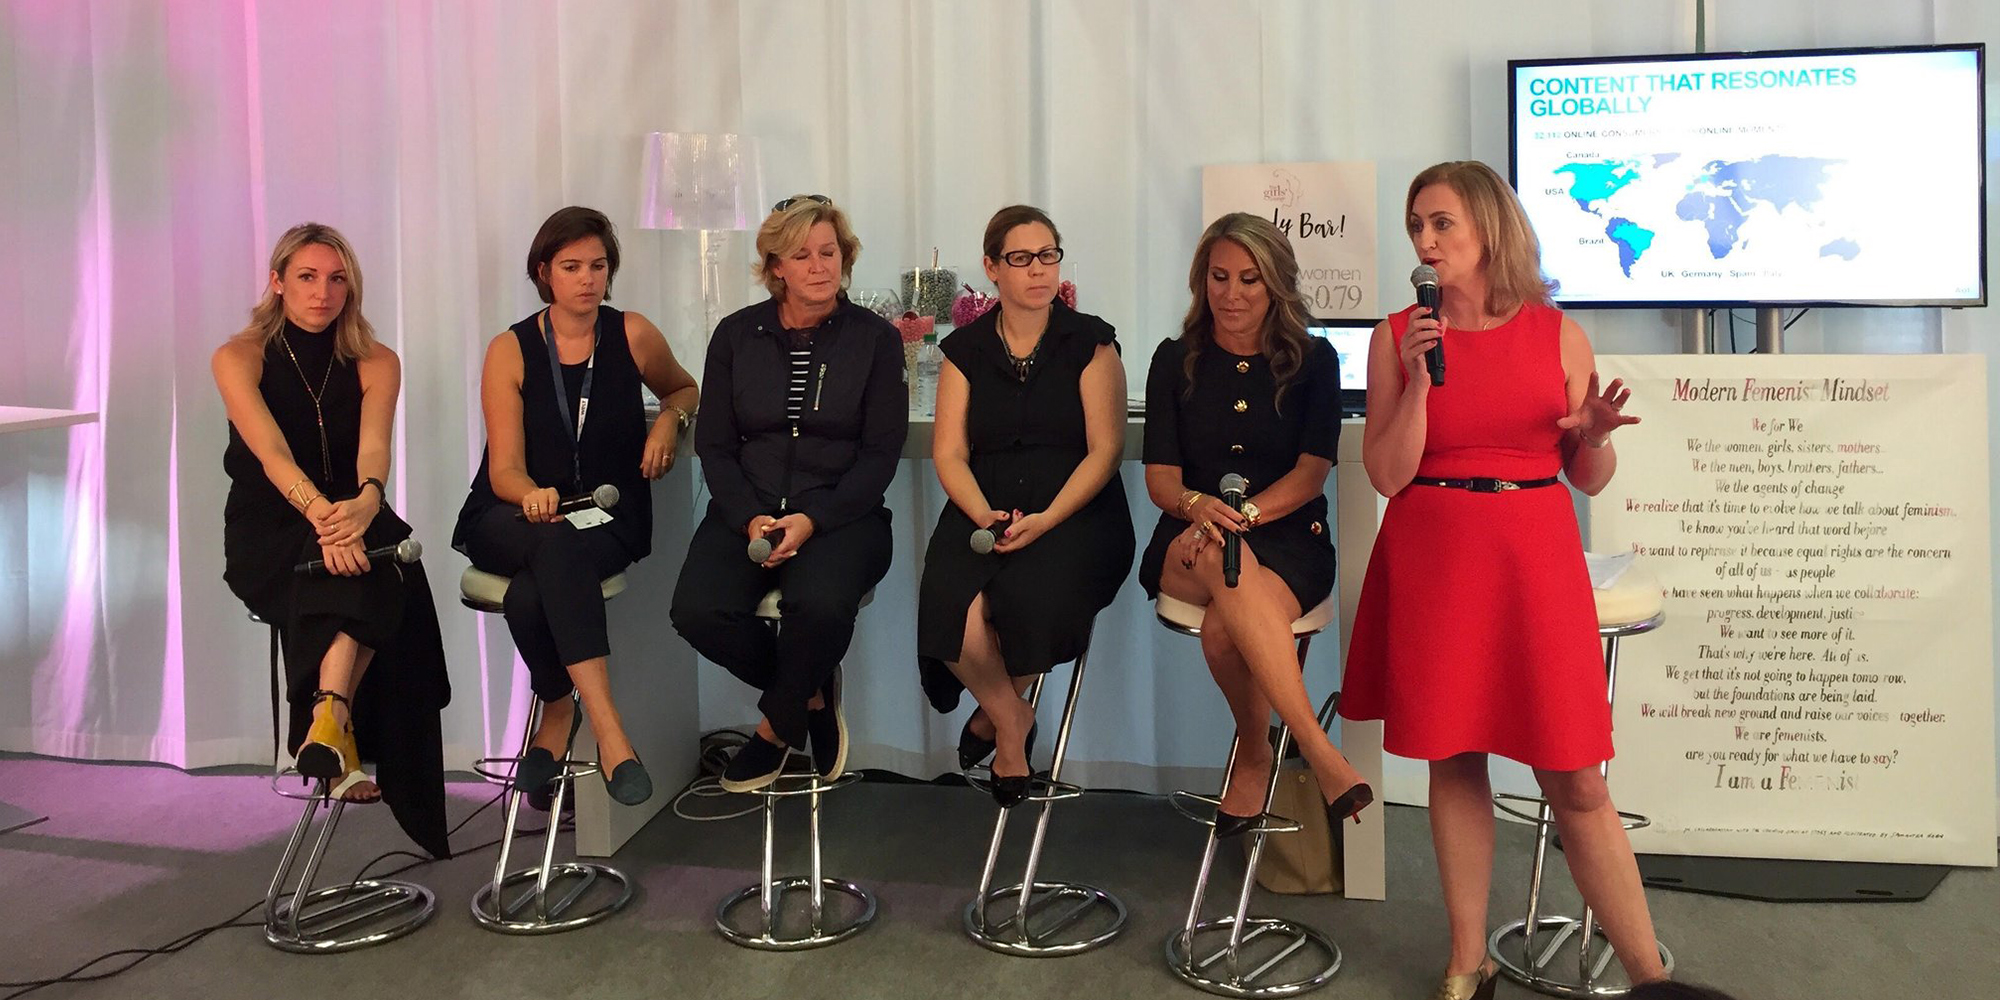 What do women want from online content?